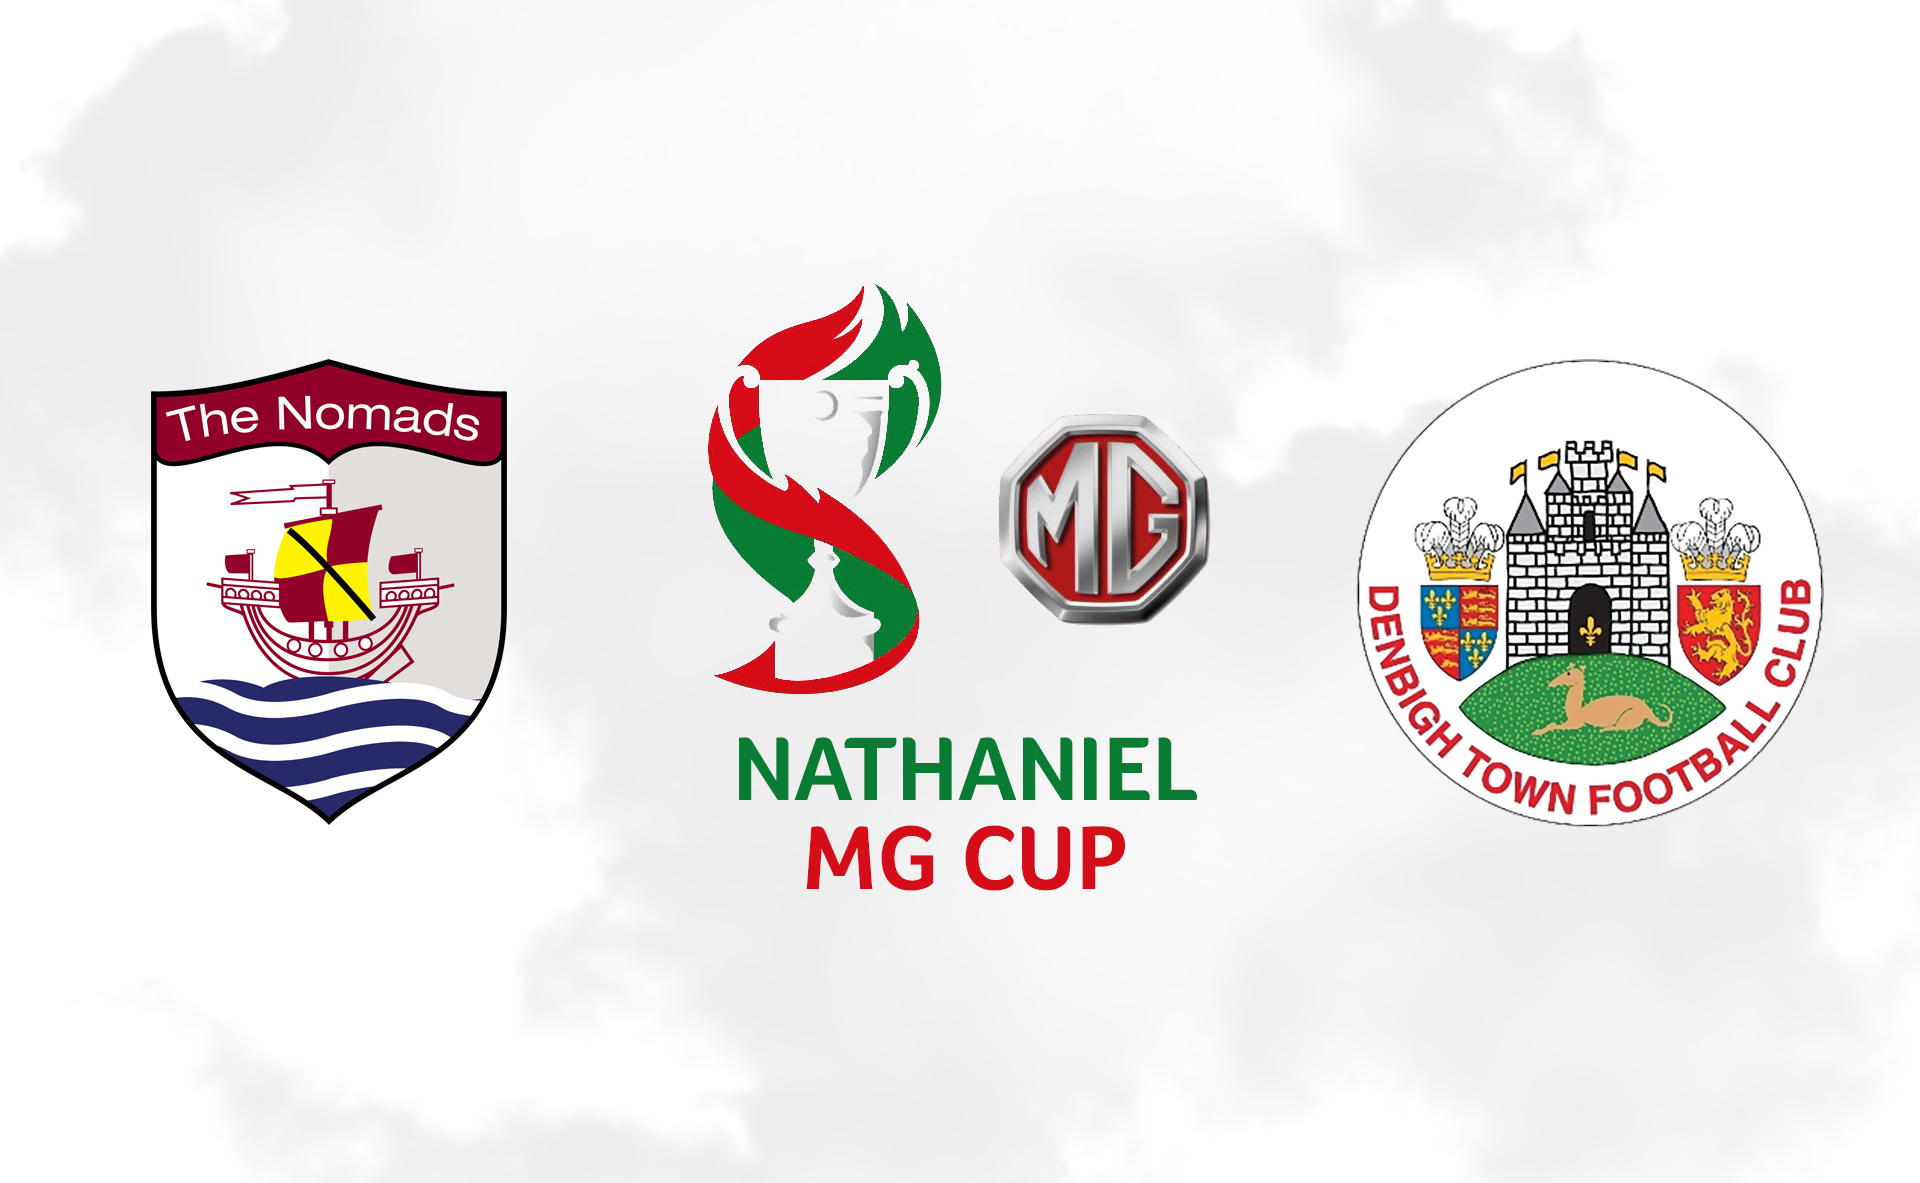 The Nomads will face Denbigh Town in the second round of the Nathaniel MG Cup